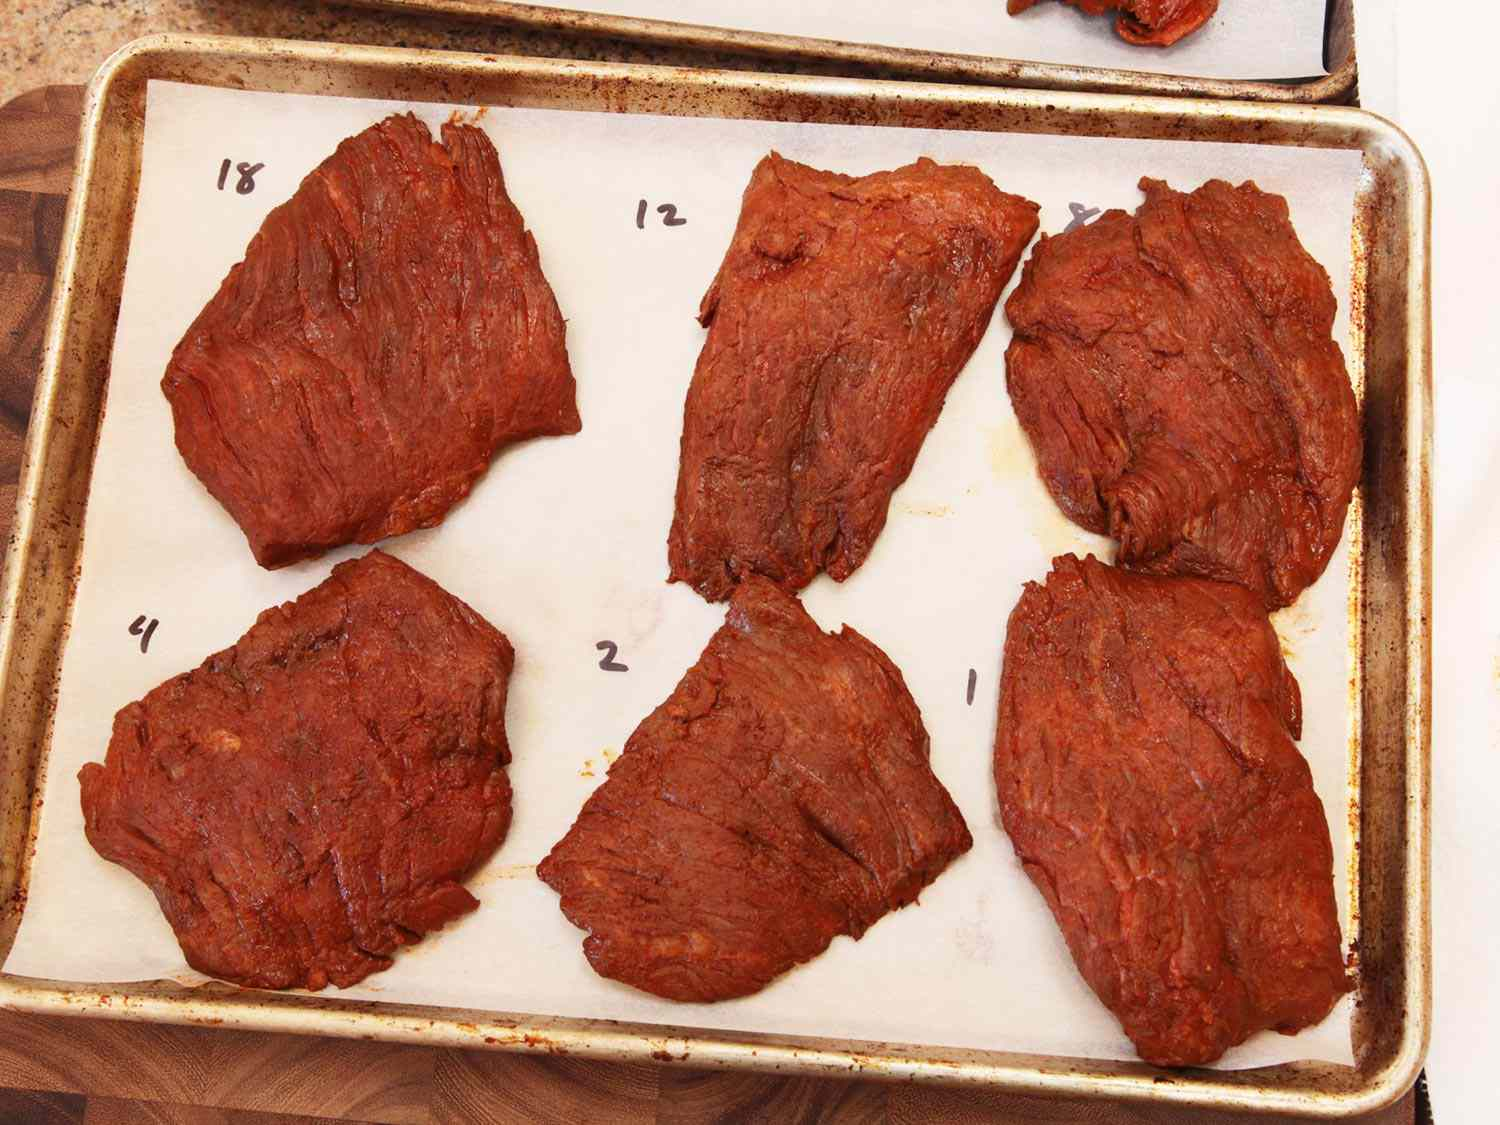 A parchment-lined sheet pan topped with six steaks, each marinated for a different number of hours, before grilling for carne asada.